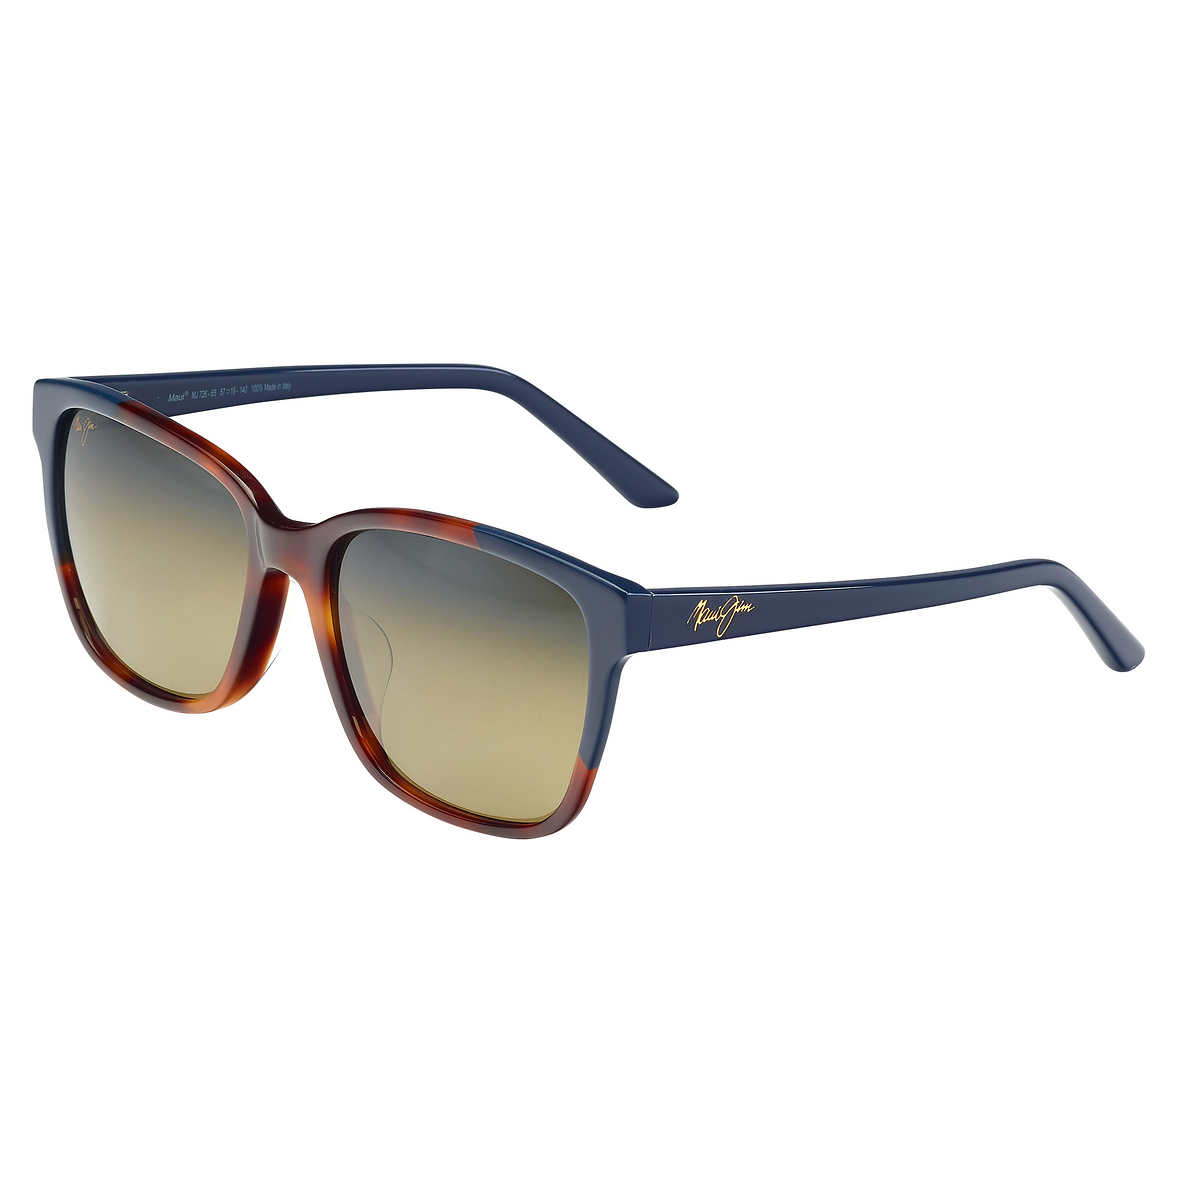 Maui Jim Moonbow Polarized Sunglasses Tortoise with Navy Blue/HCL Bronze One Size